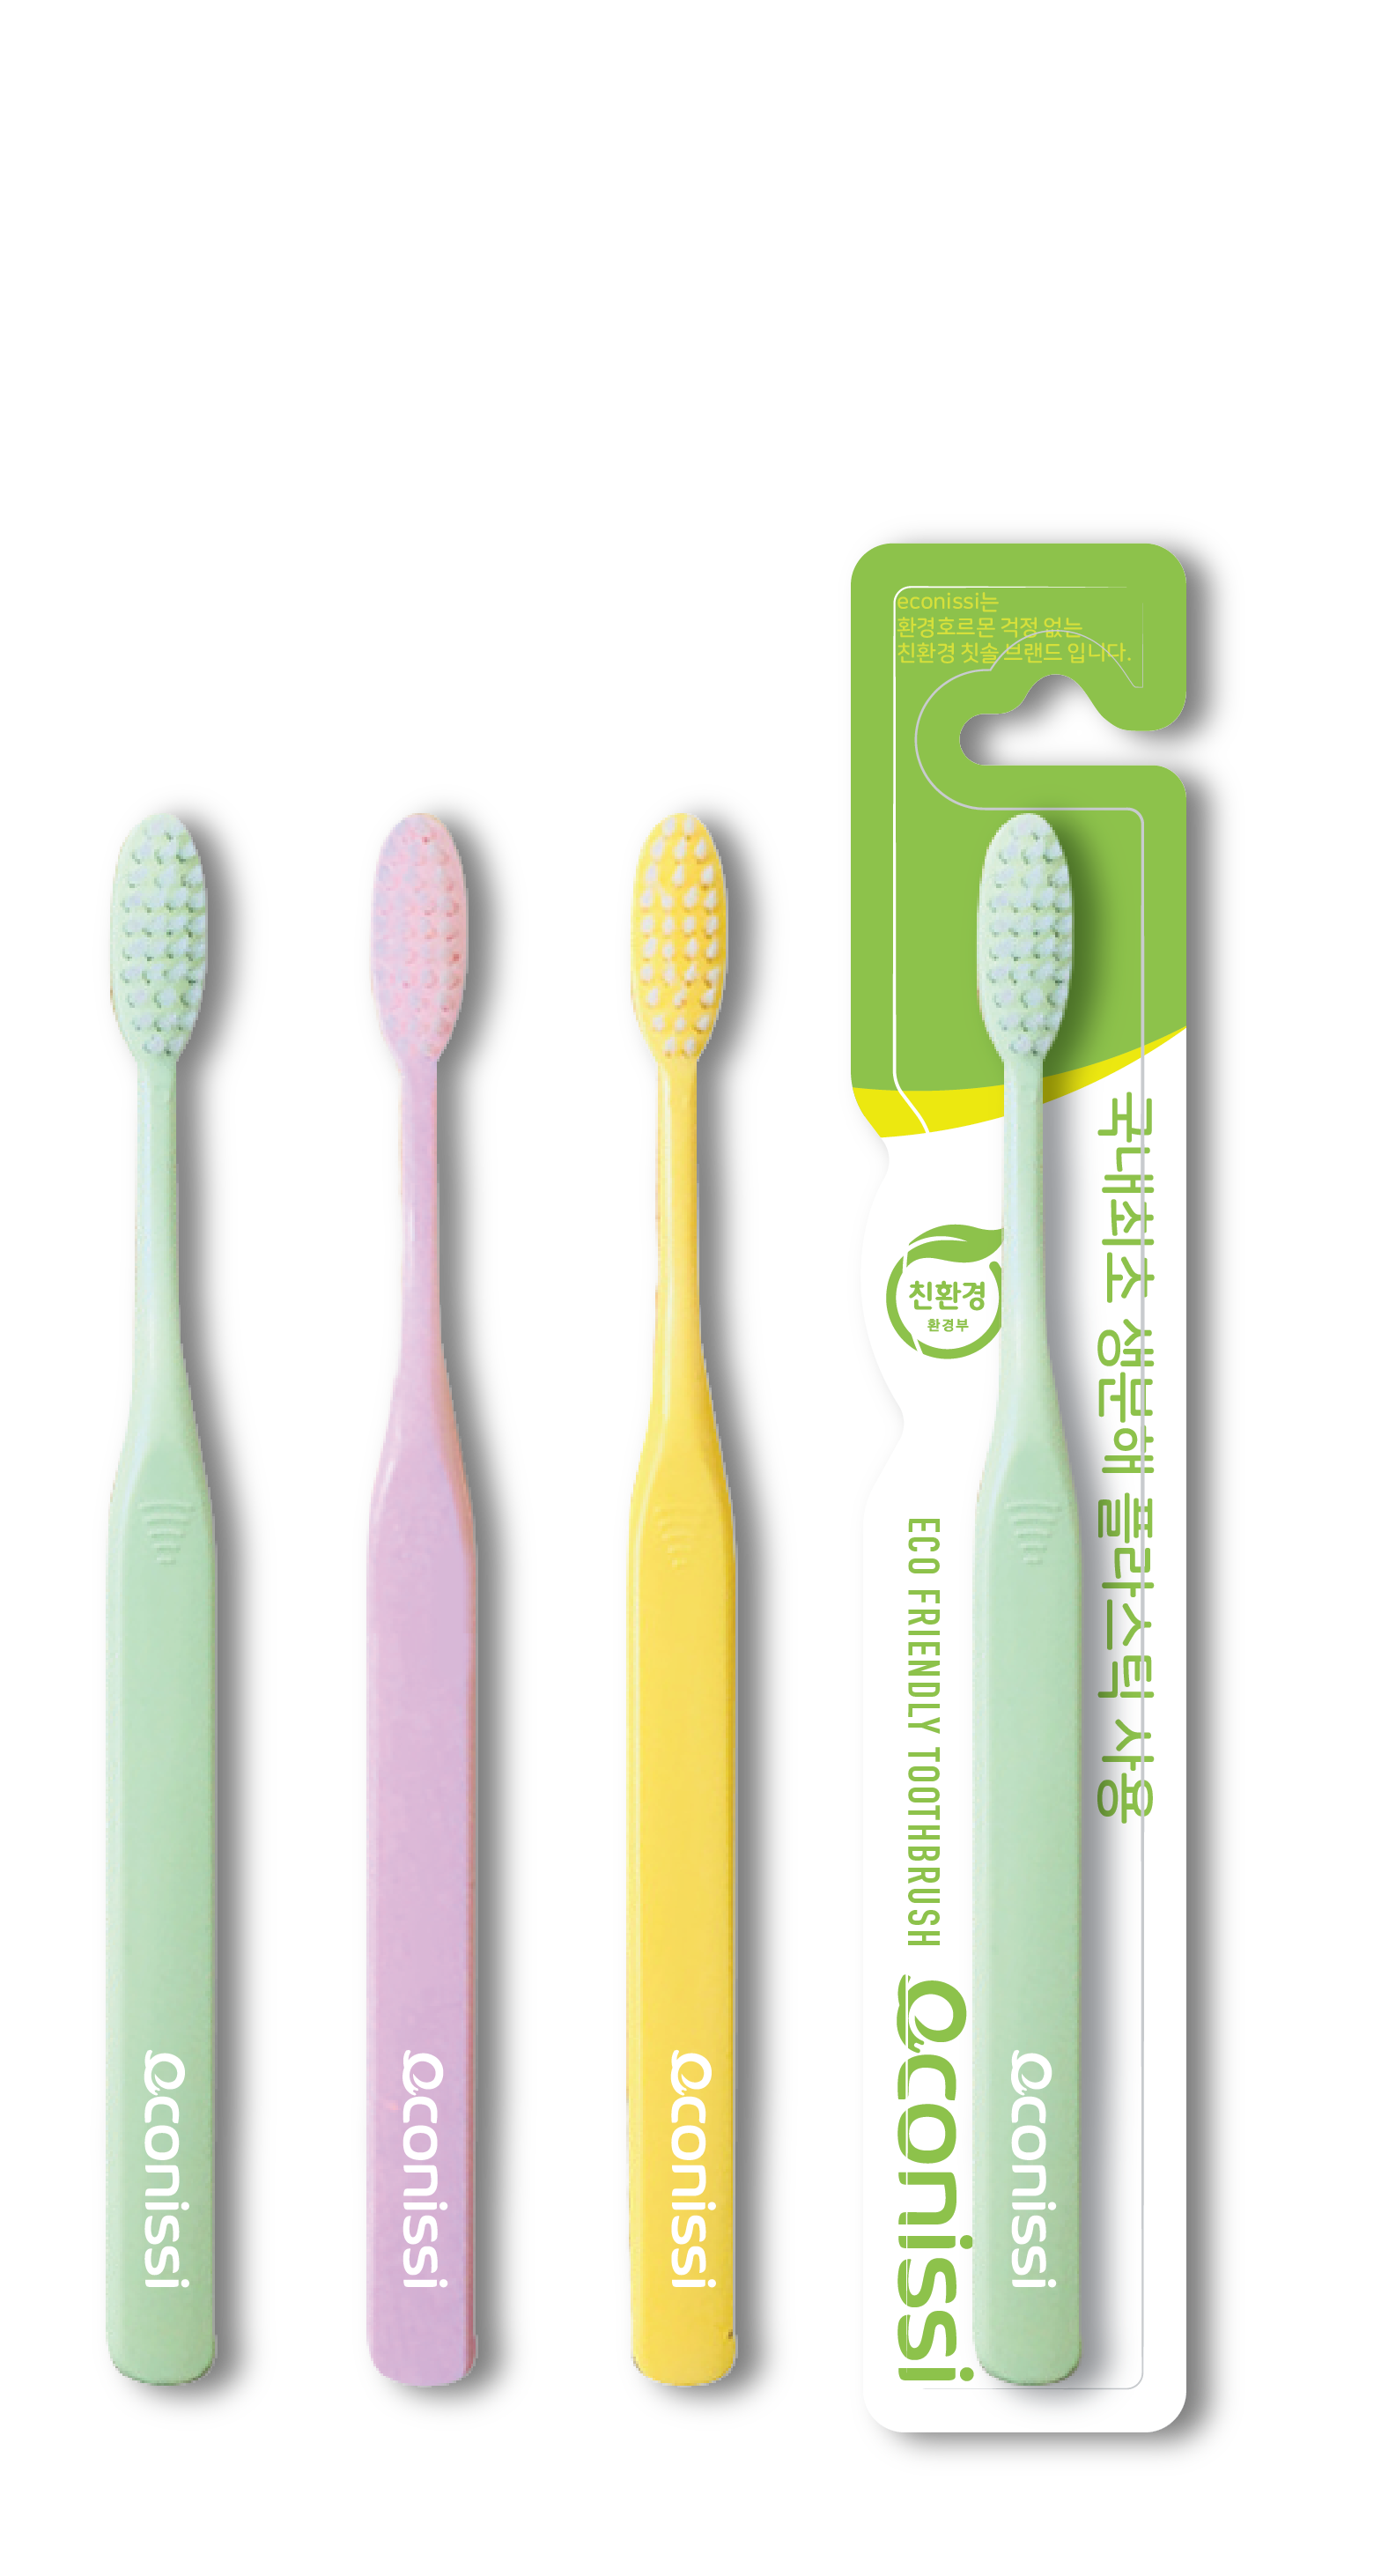 Eco Nissi eco-friendly toothbrush